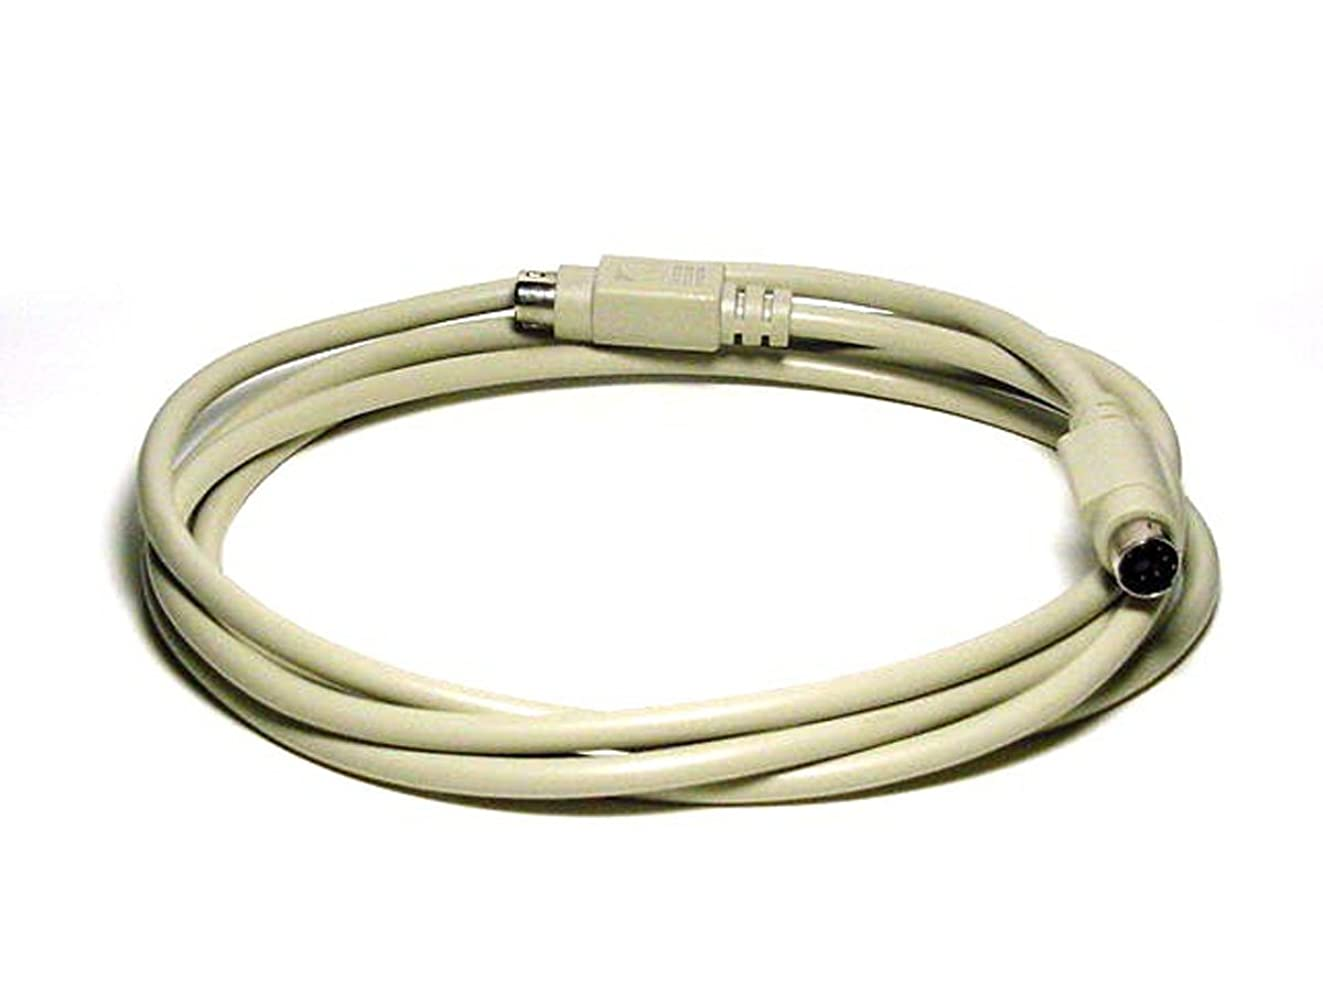 Monoprice 100095 10-Feet PS/2 MDIN-6 Male to Female Cable (100095)